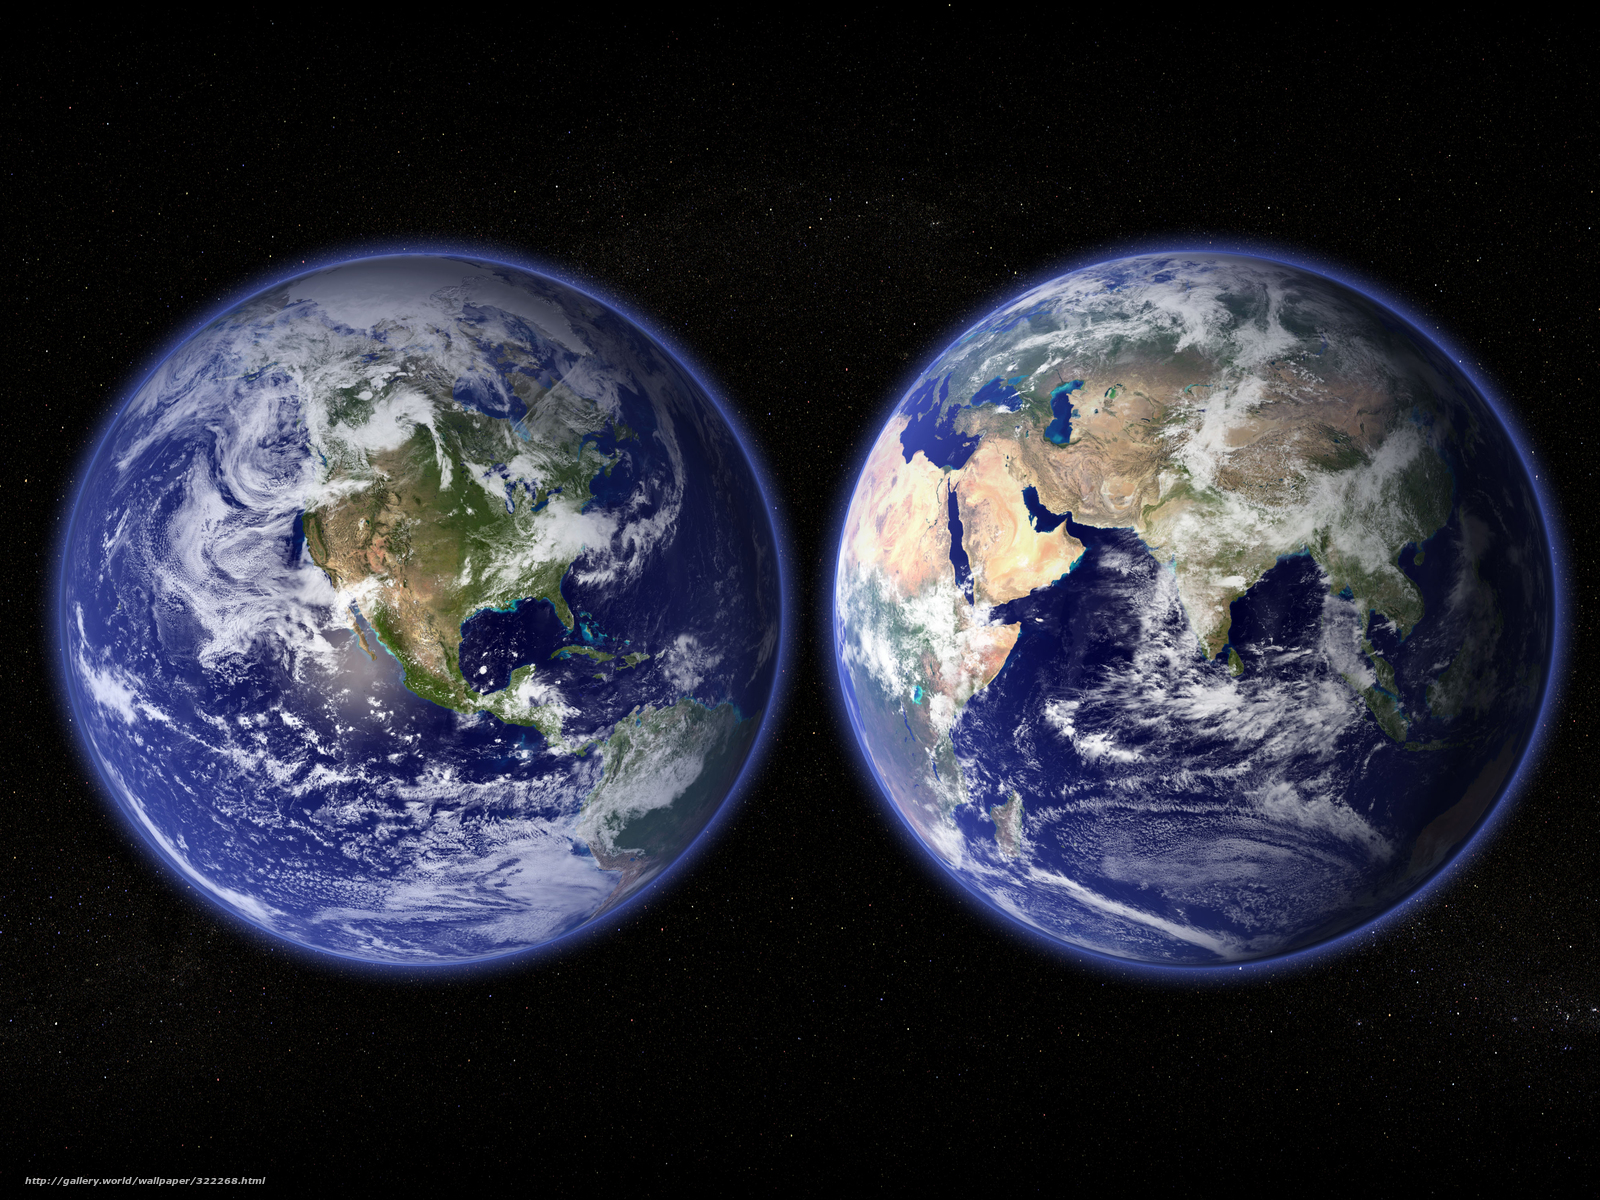 an astrological analysis of the planet mars in comparison to the earth